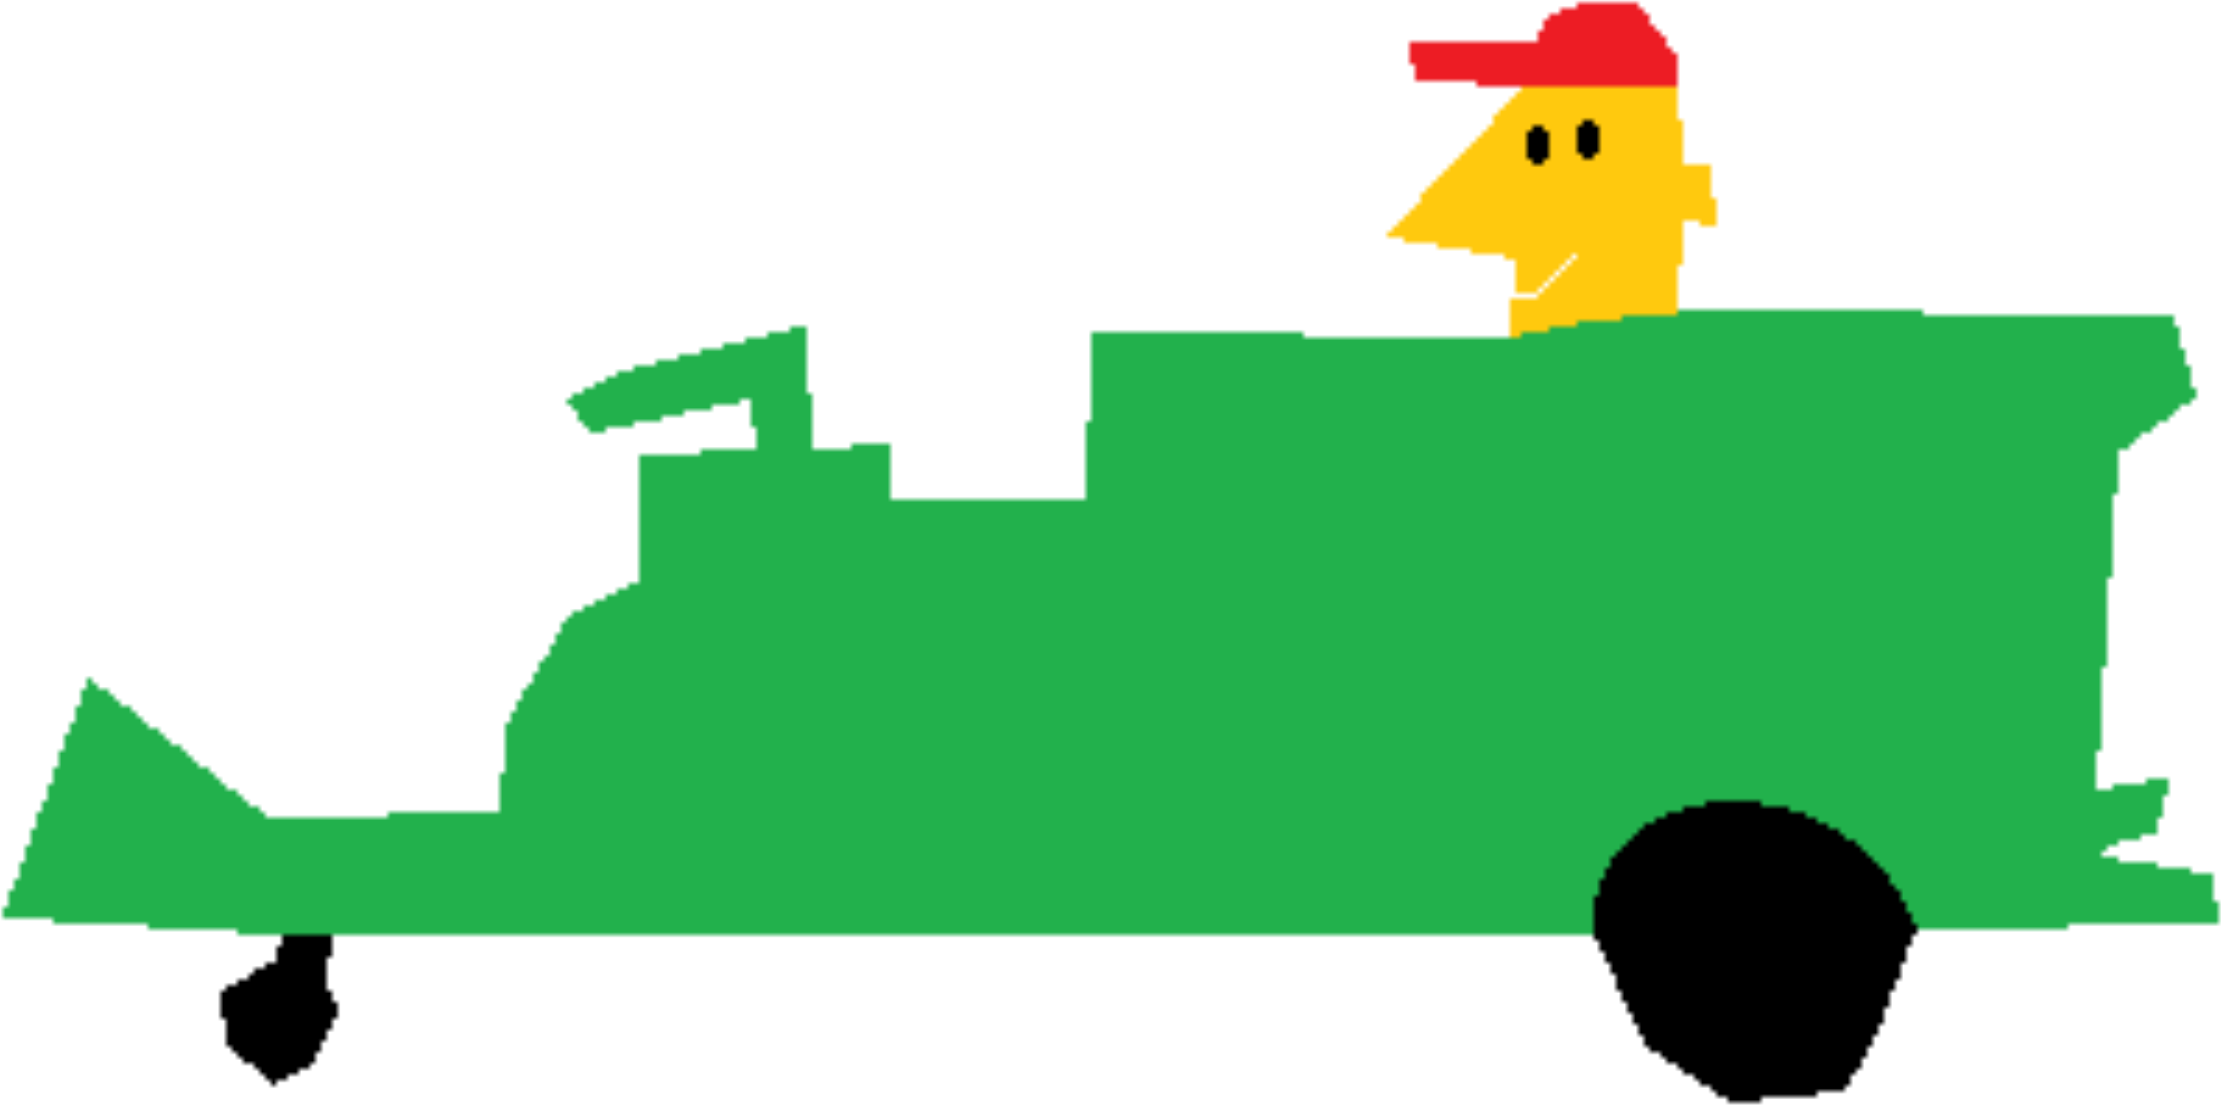 Clipart funny car png library library Clipart - Funny Car png library library